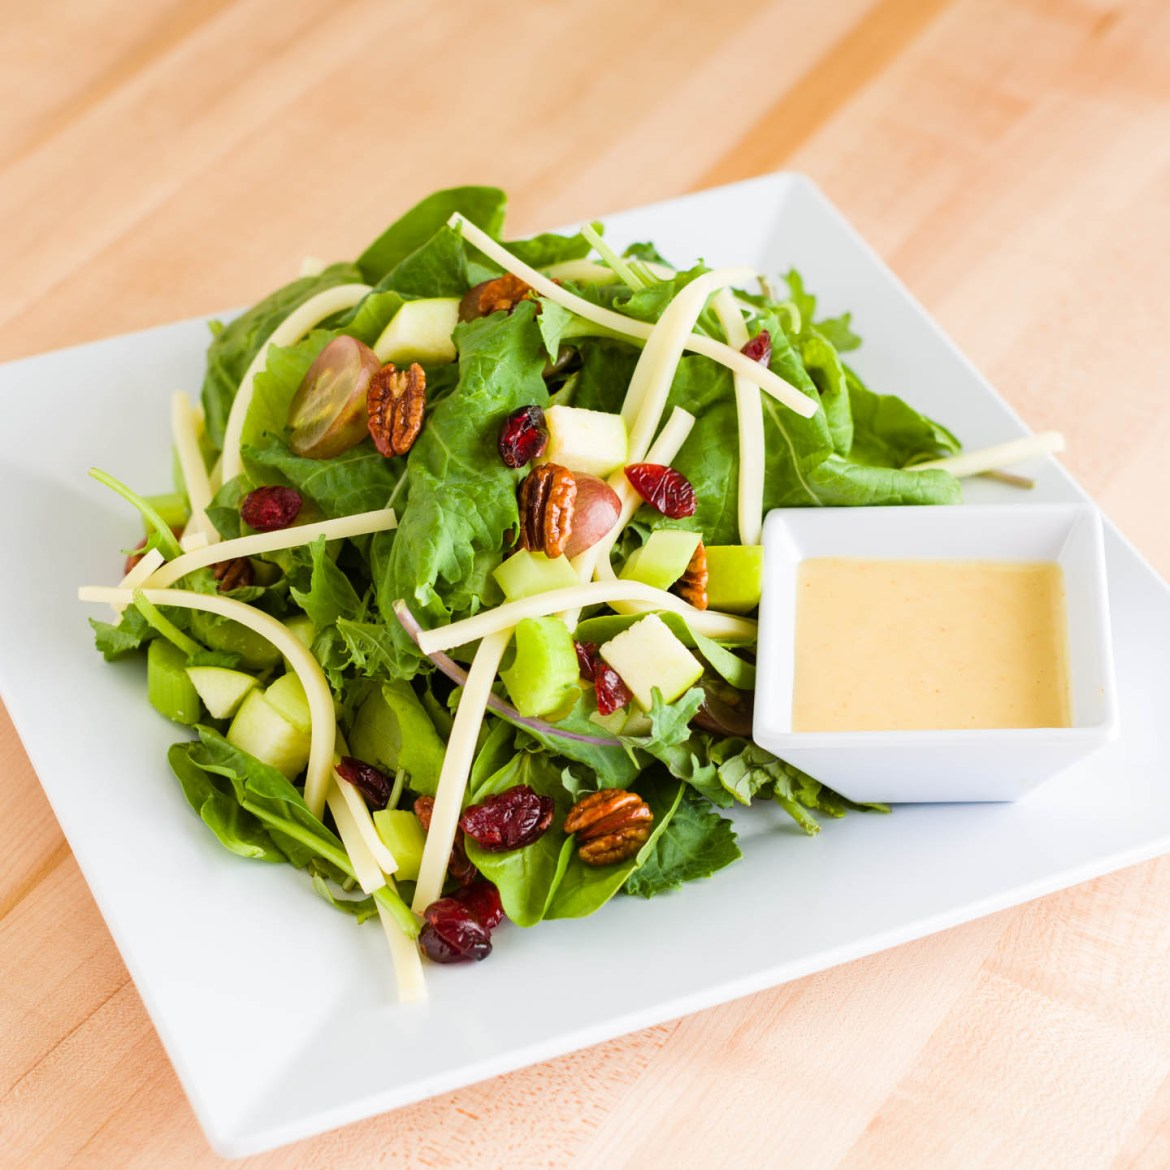 Spinach salad with kale, pecans, apples and cranberries